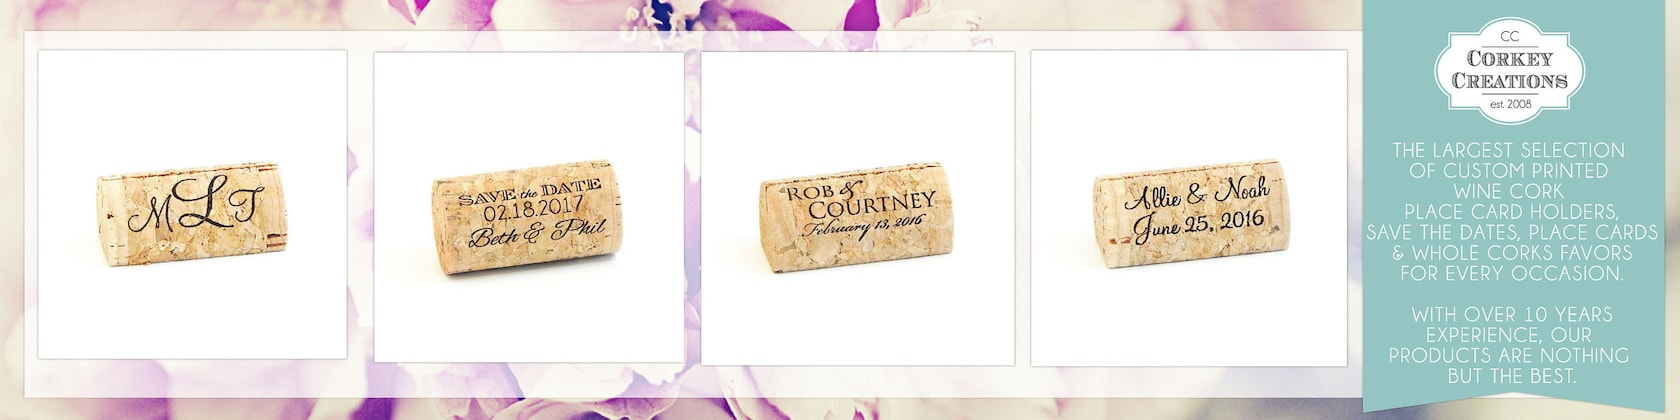 Wine Cork Place Card Holders Personalized And By Corkeycreations